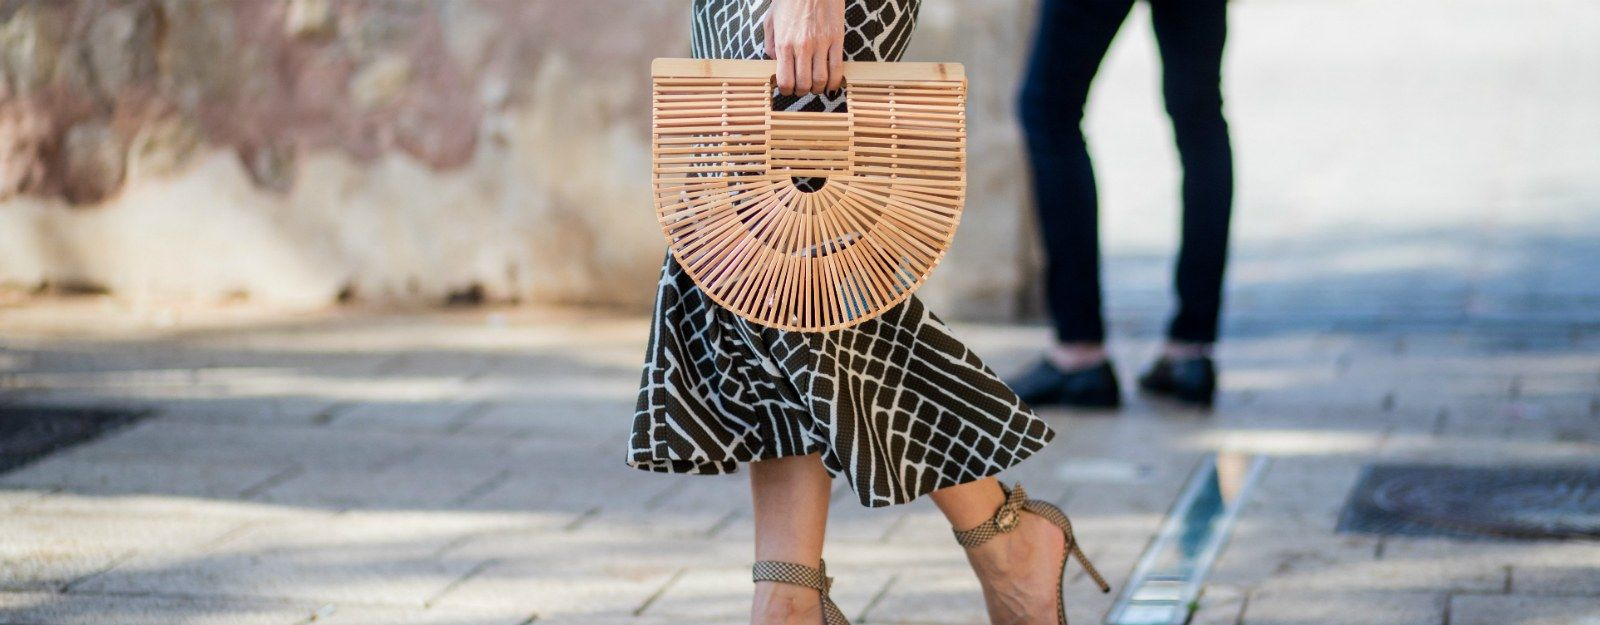 10 Straw Accessories We're Loving Right Now